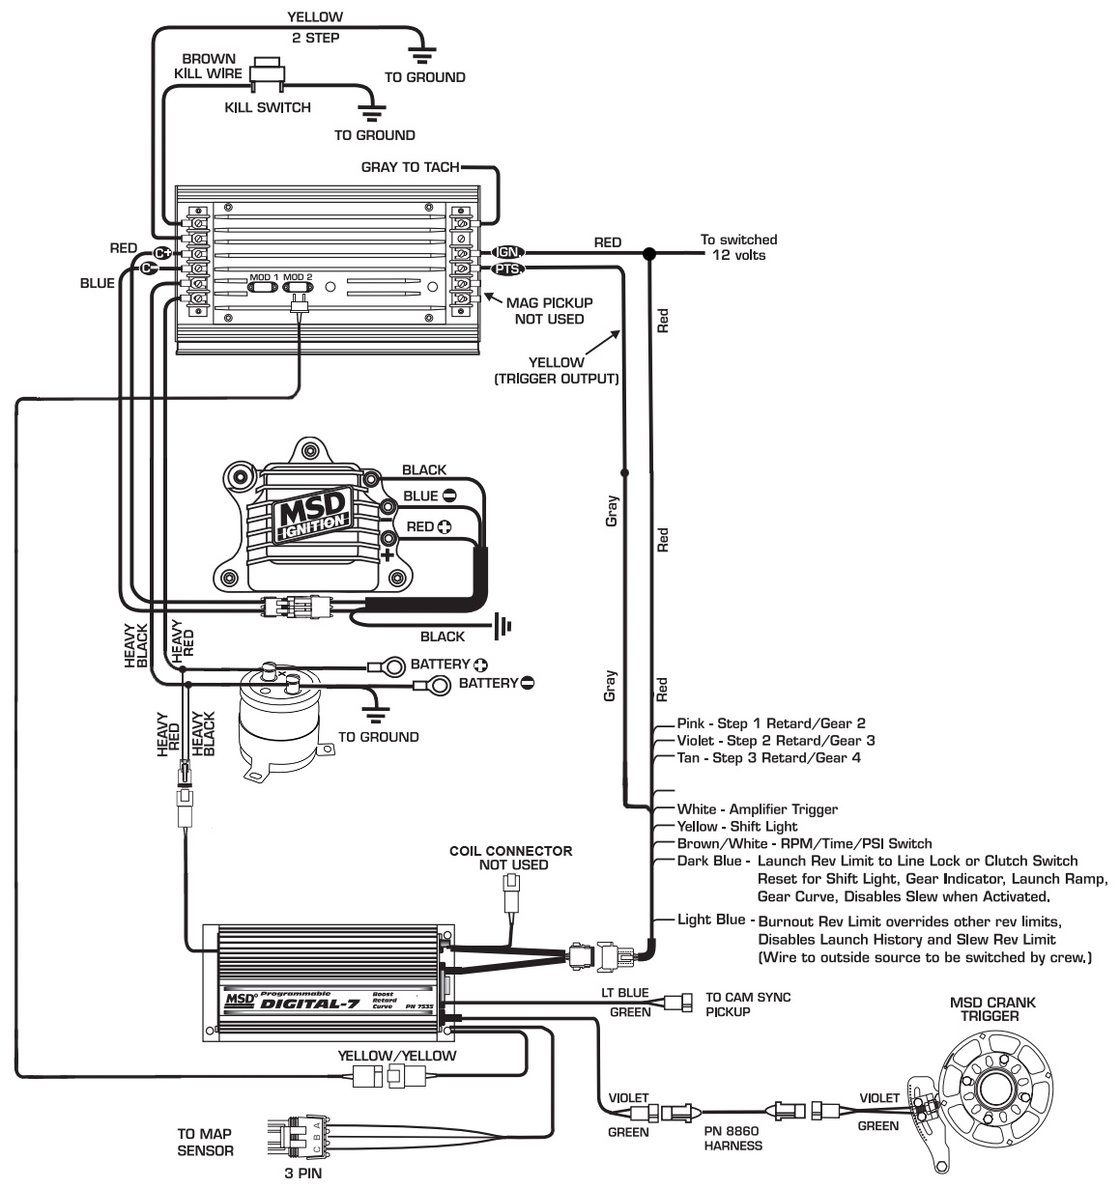 Msd 6 Btm Wiring Diagram Auto Electrical Oreck Model Xl2800h2